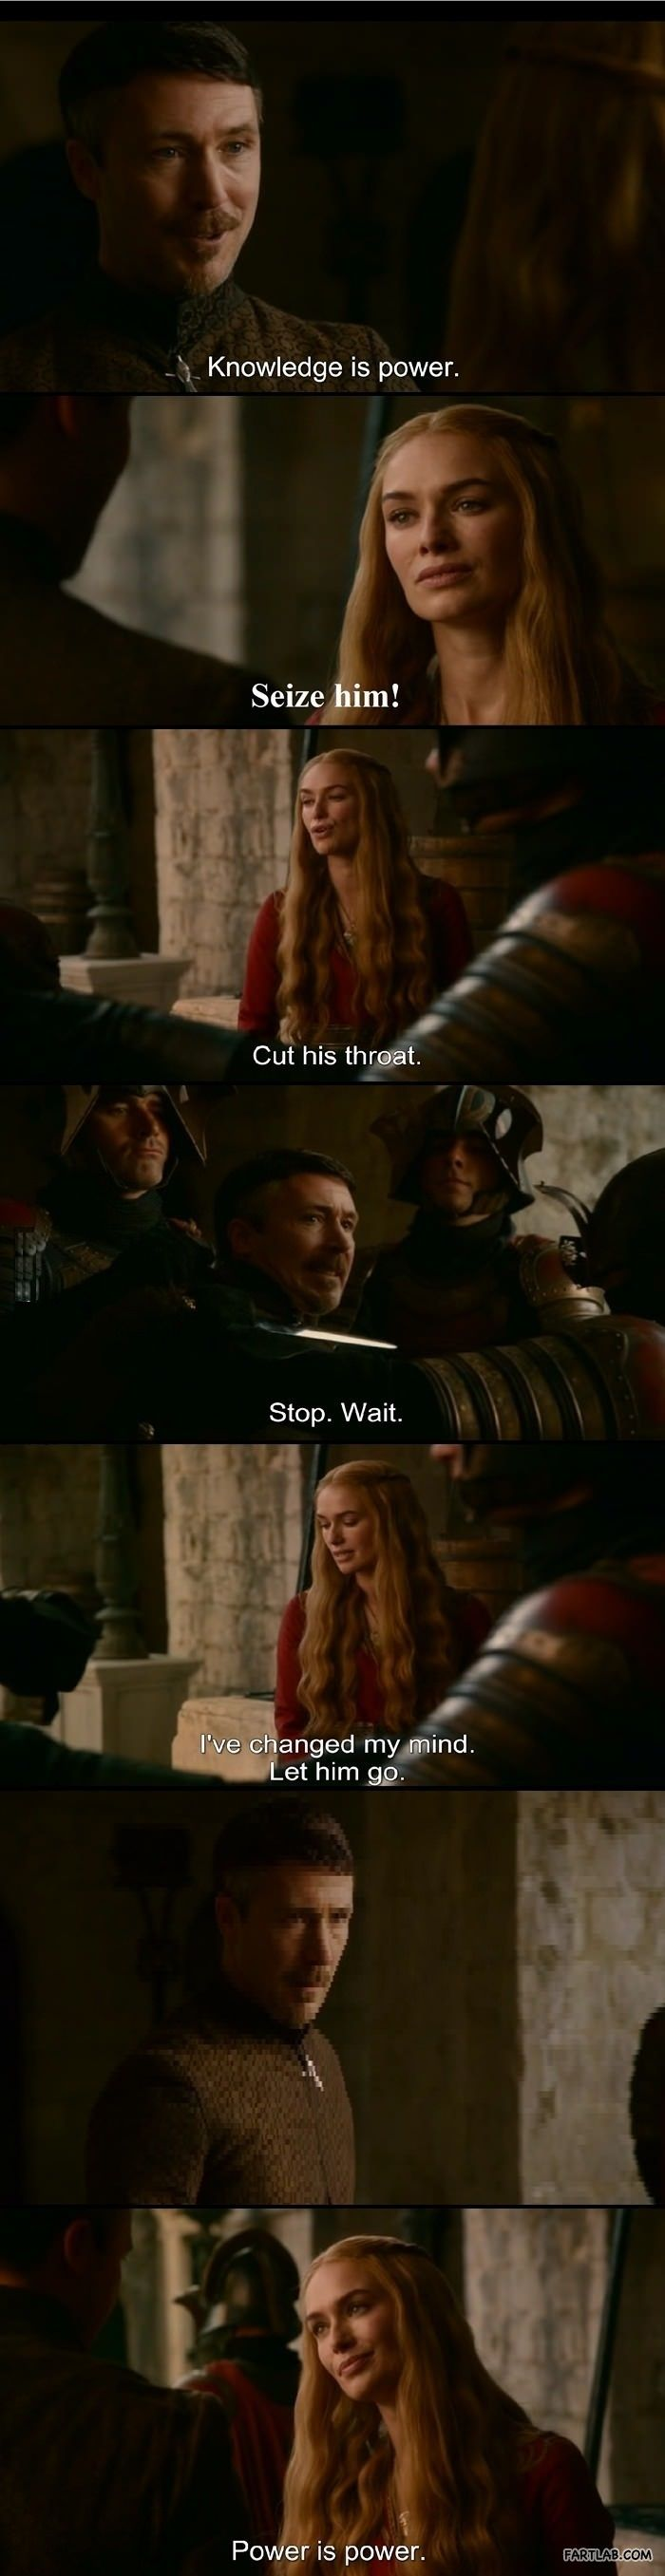 Power is power. Recent events in the USA have proven that you can be the most ignorant fucking moron in the country, and you can still be handed power. Cersei is not my queen, and he is not my president.